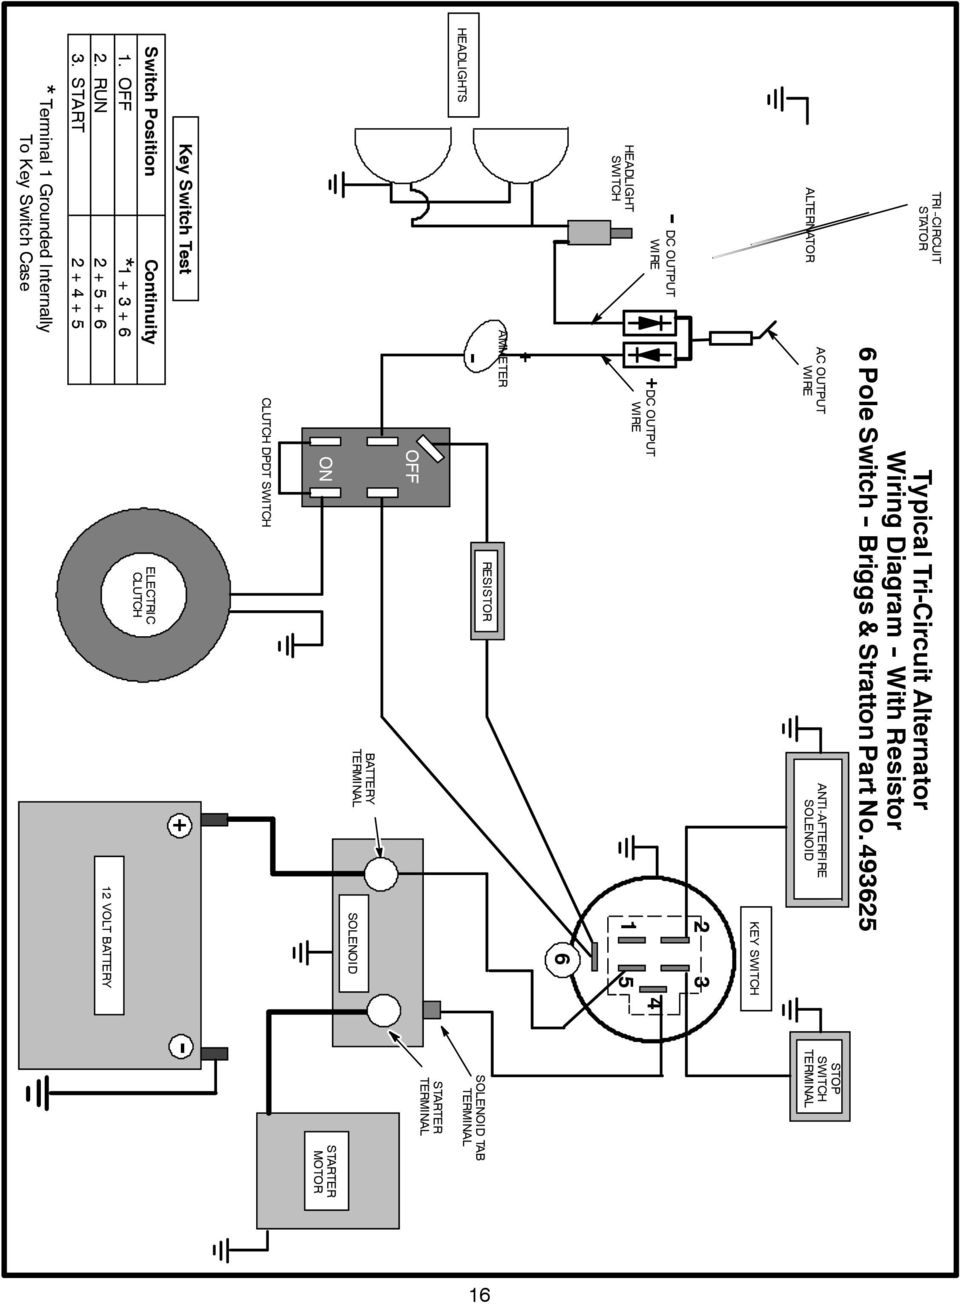 Alternator Identification Pdf 12 Volt Dc Wiring Diagram 96 Antiafterfire Key Output S Ammeter Resistor 6 Tab Off On Motor